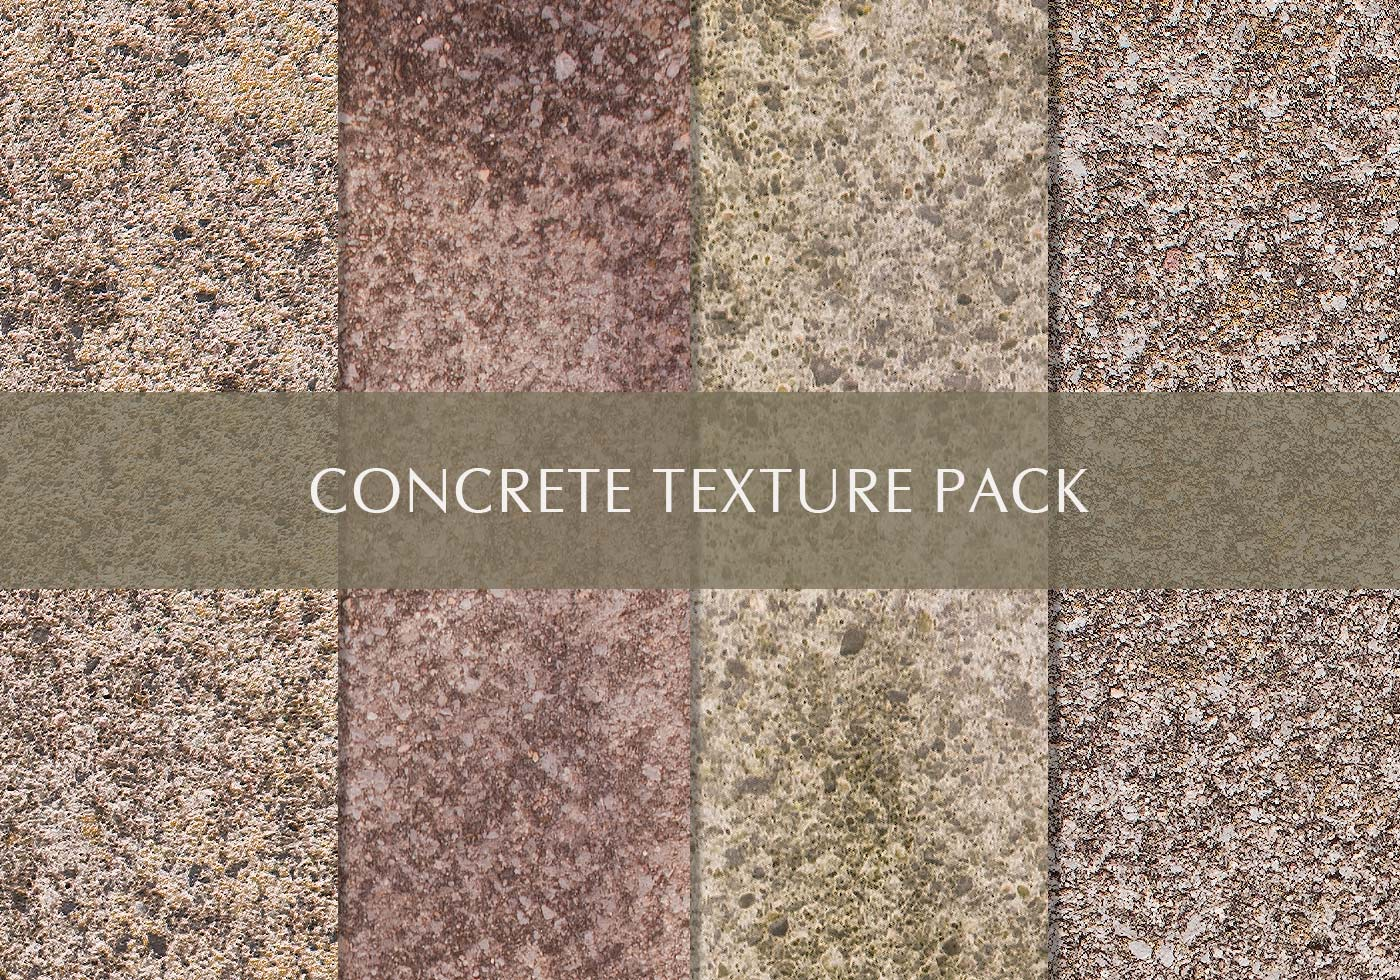 Concrete Texture Pack Broken Brick Wall Photoshop